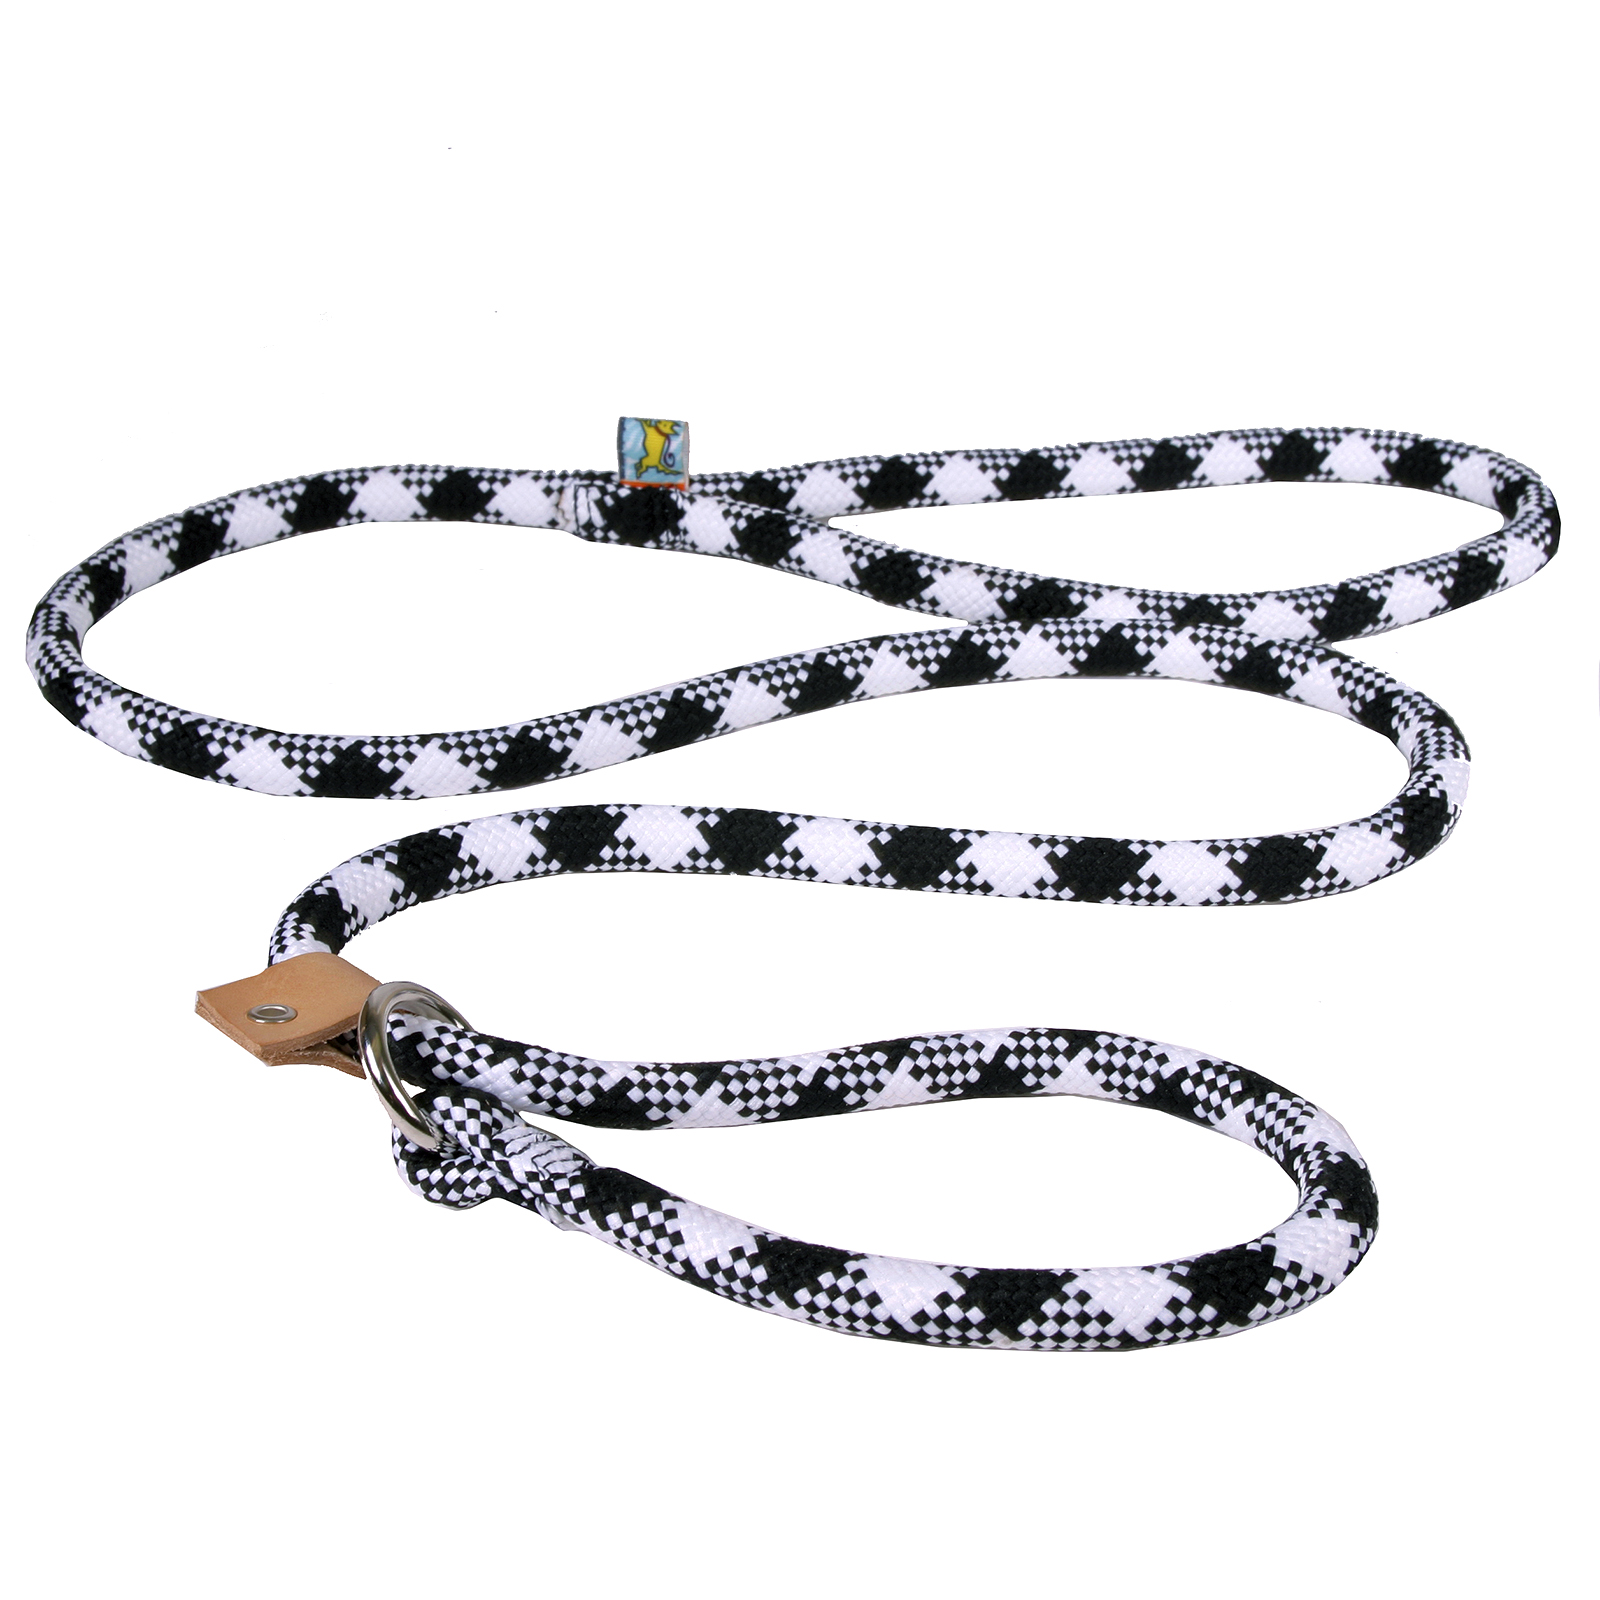 Yellow Dog Braided Rope Argyle Slip Leash For Dogs